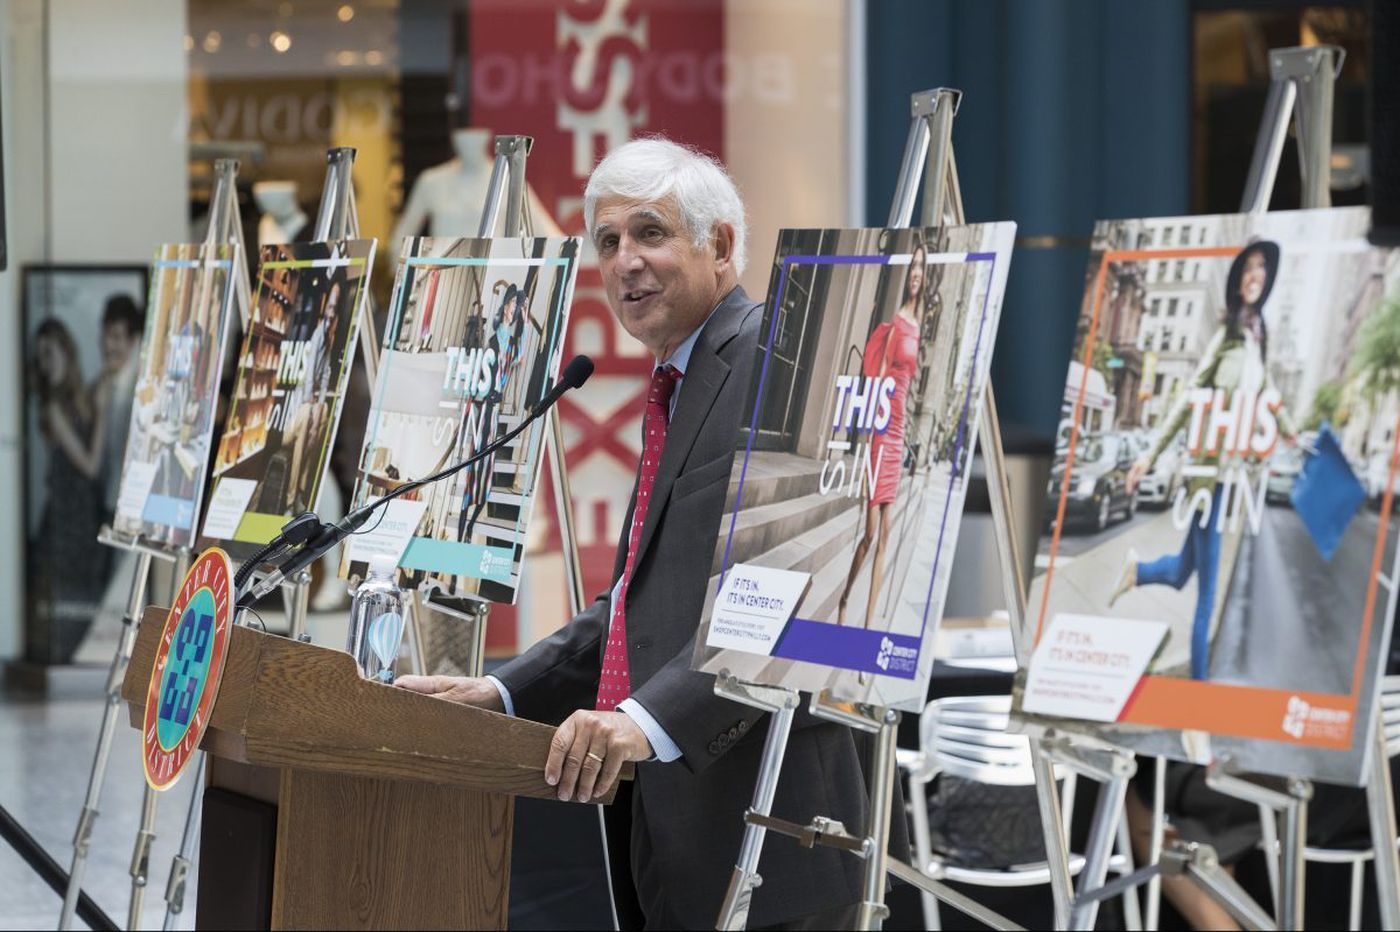 It's about the Center City shopping, too, new marketing push says